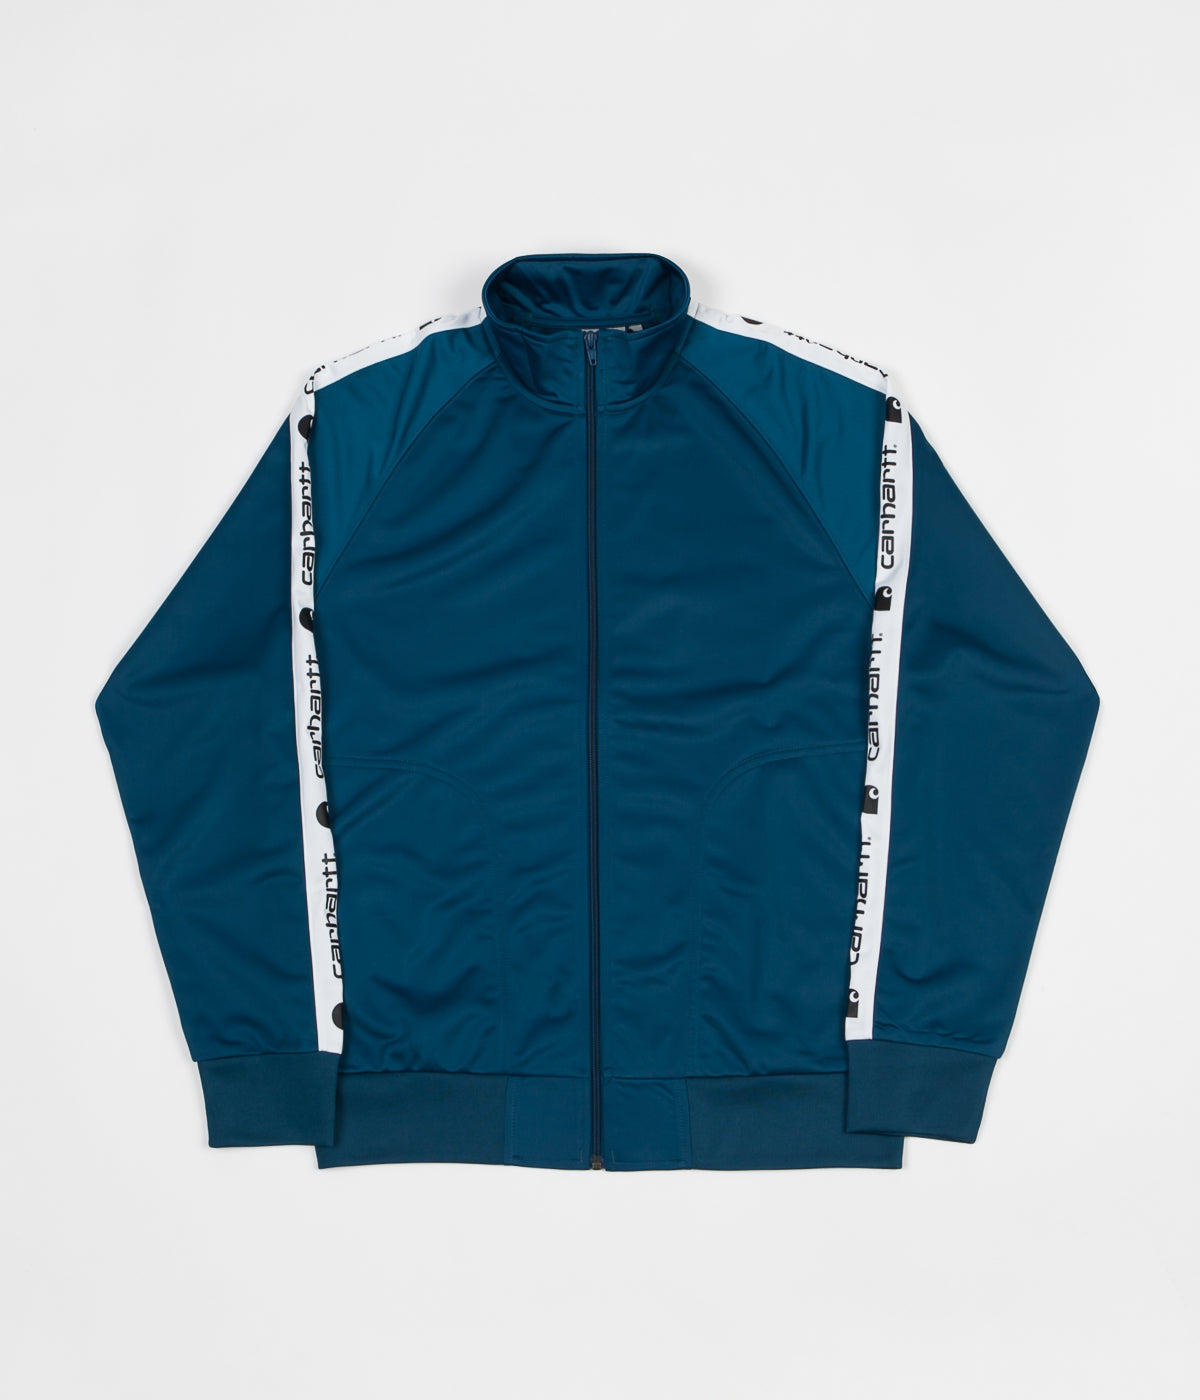 Carhartt Goodwin Track Jacket - Corse / White